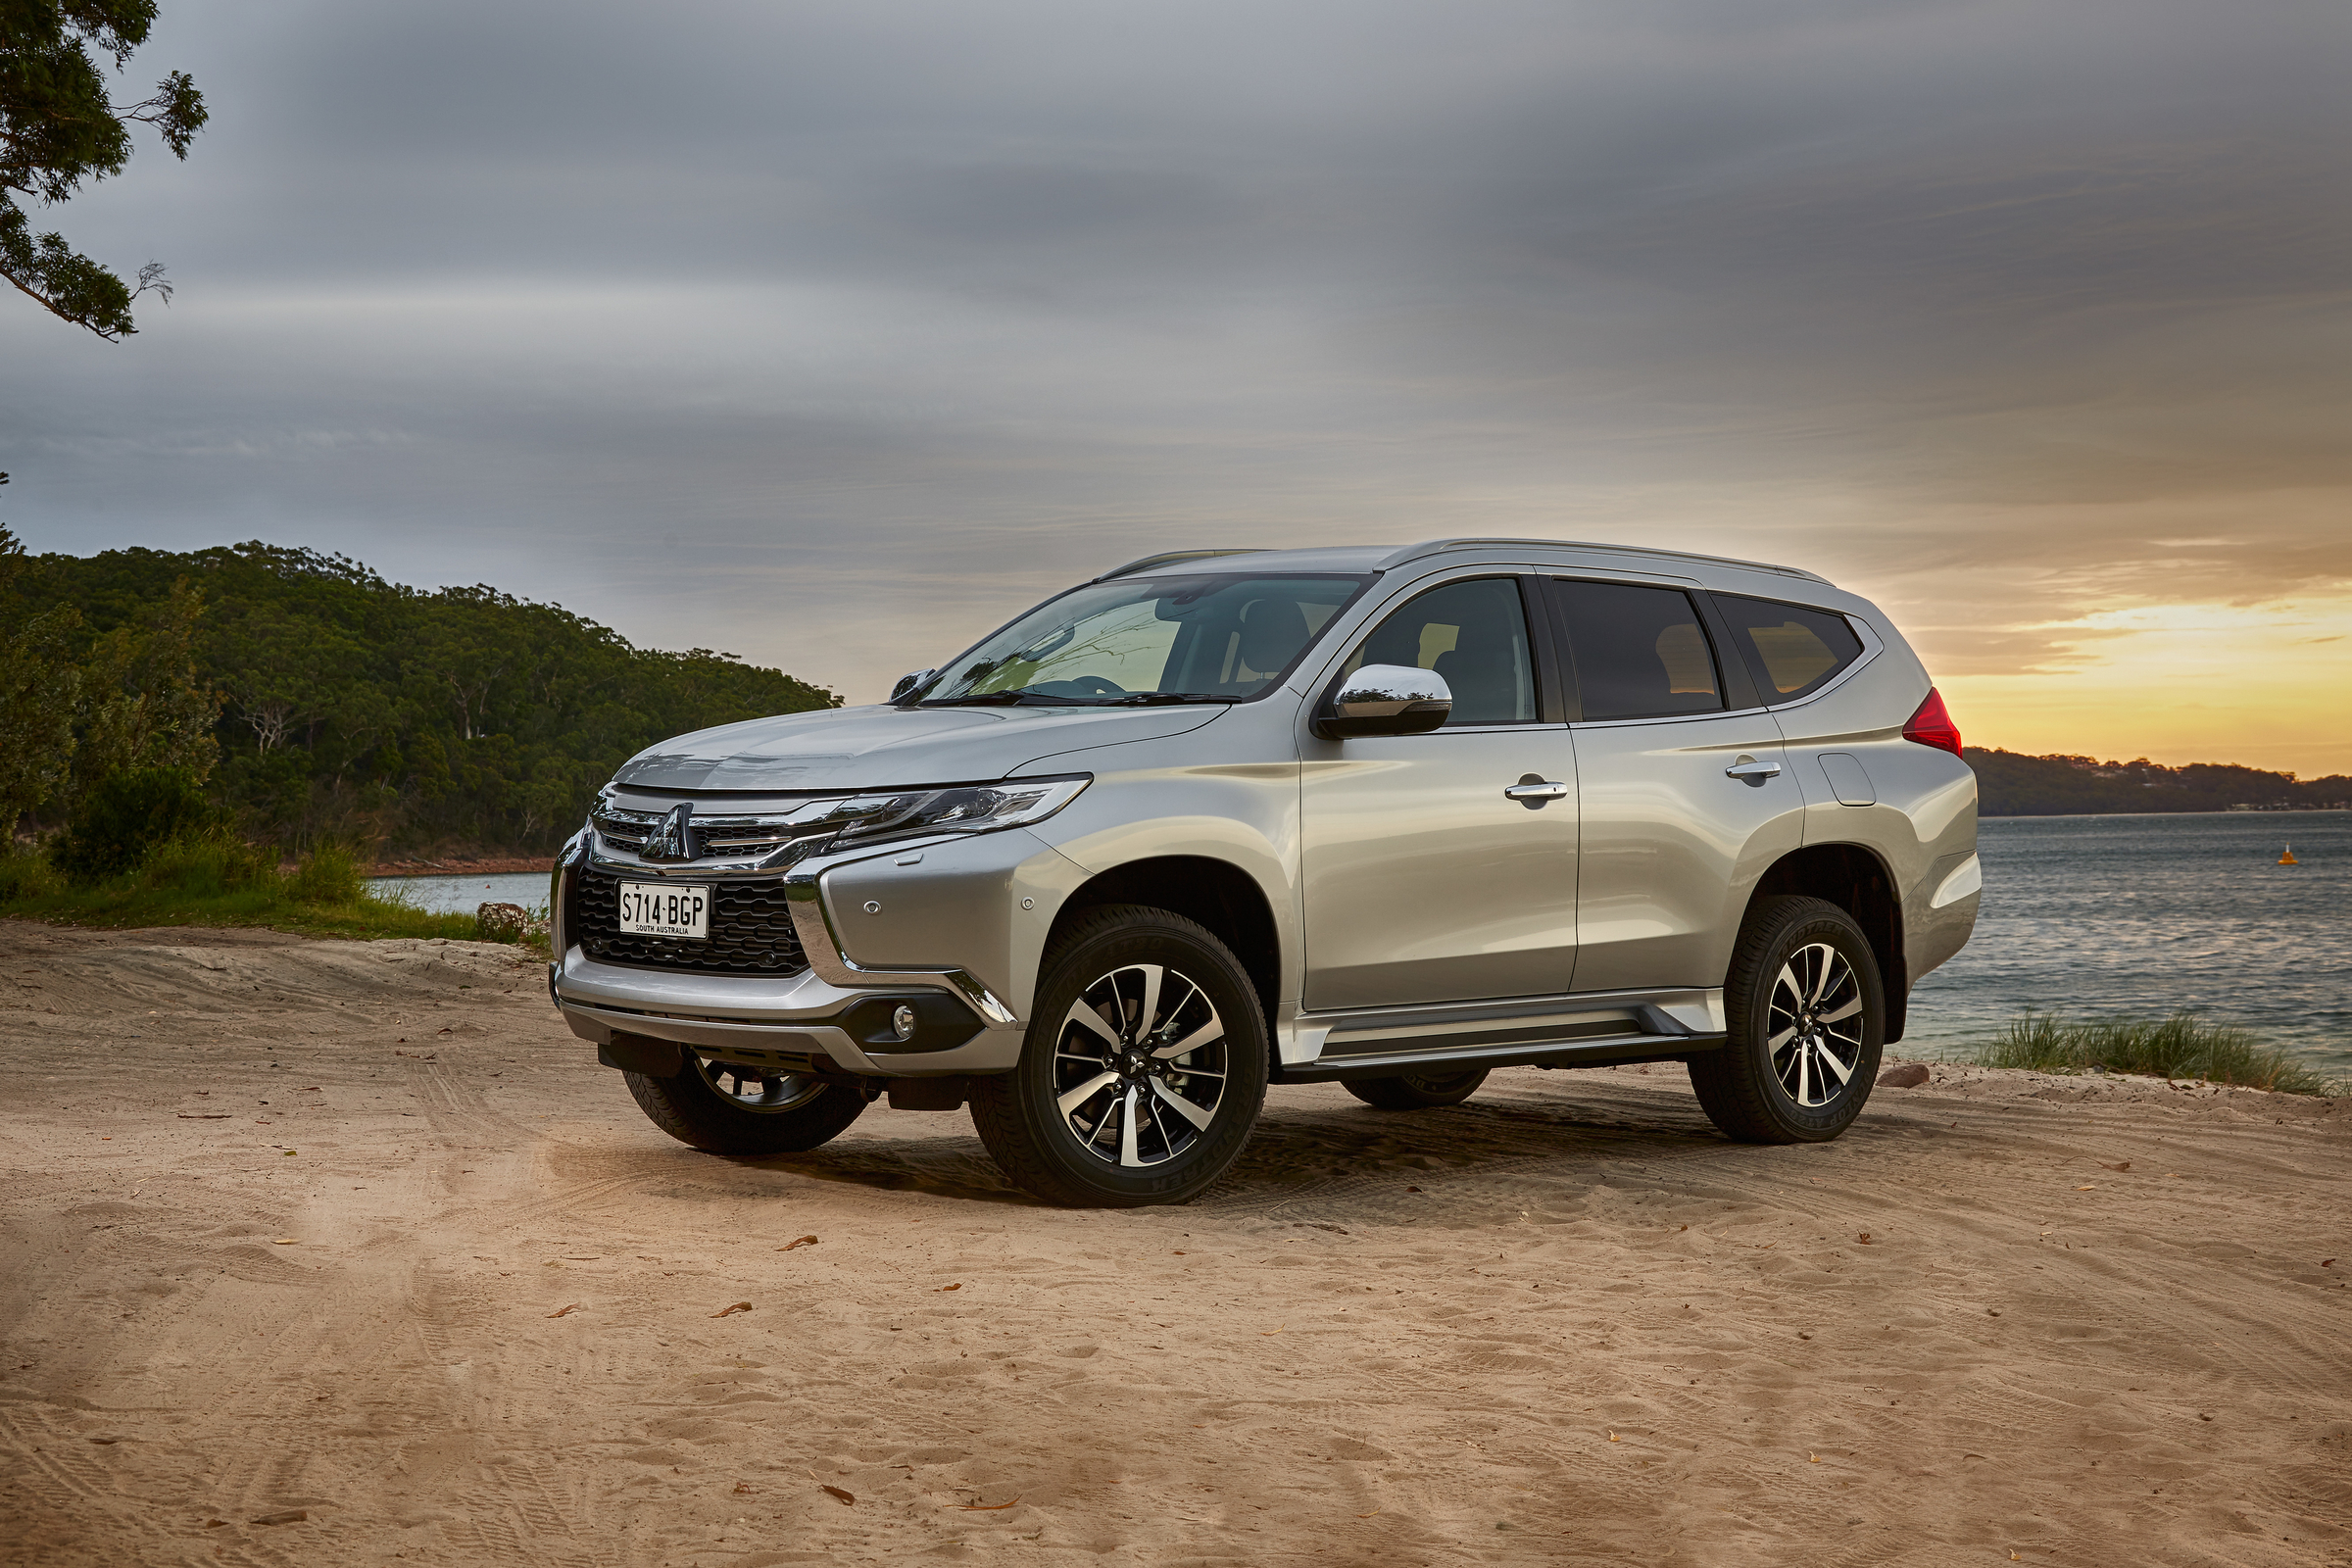 2016 Mitsubishi Pajero Sport Exterior Preview (Photo 6 of 23)